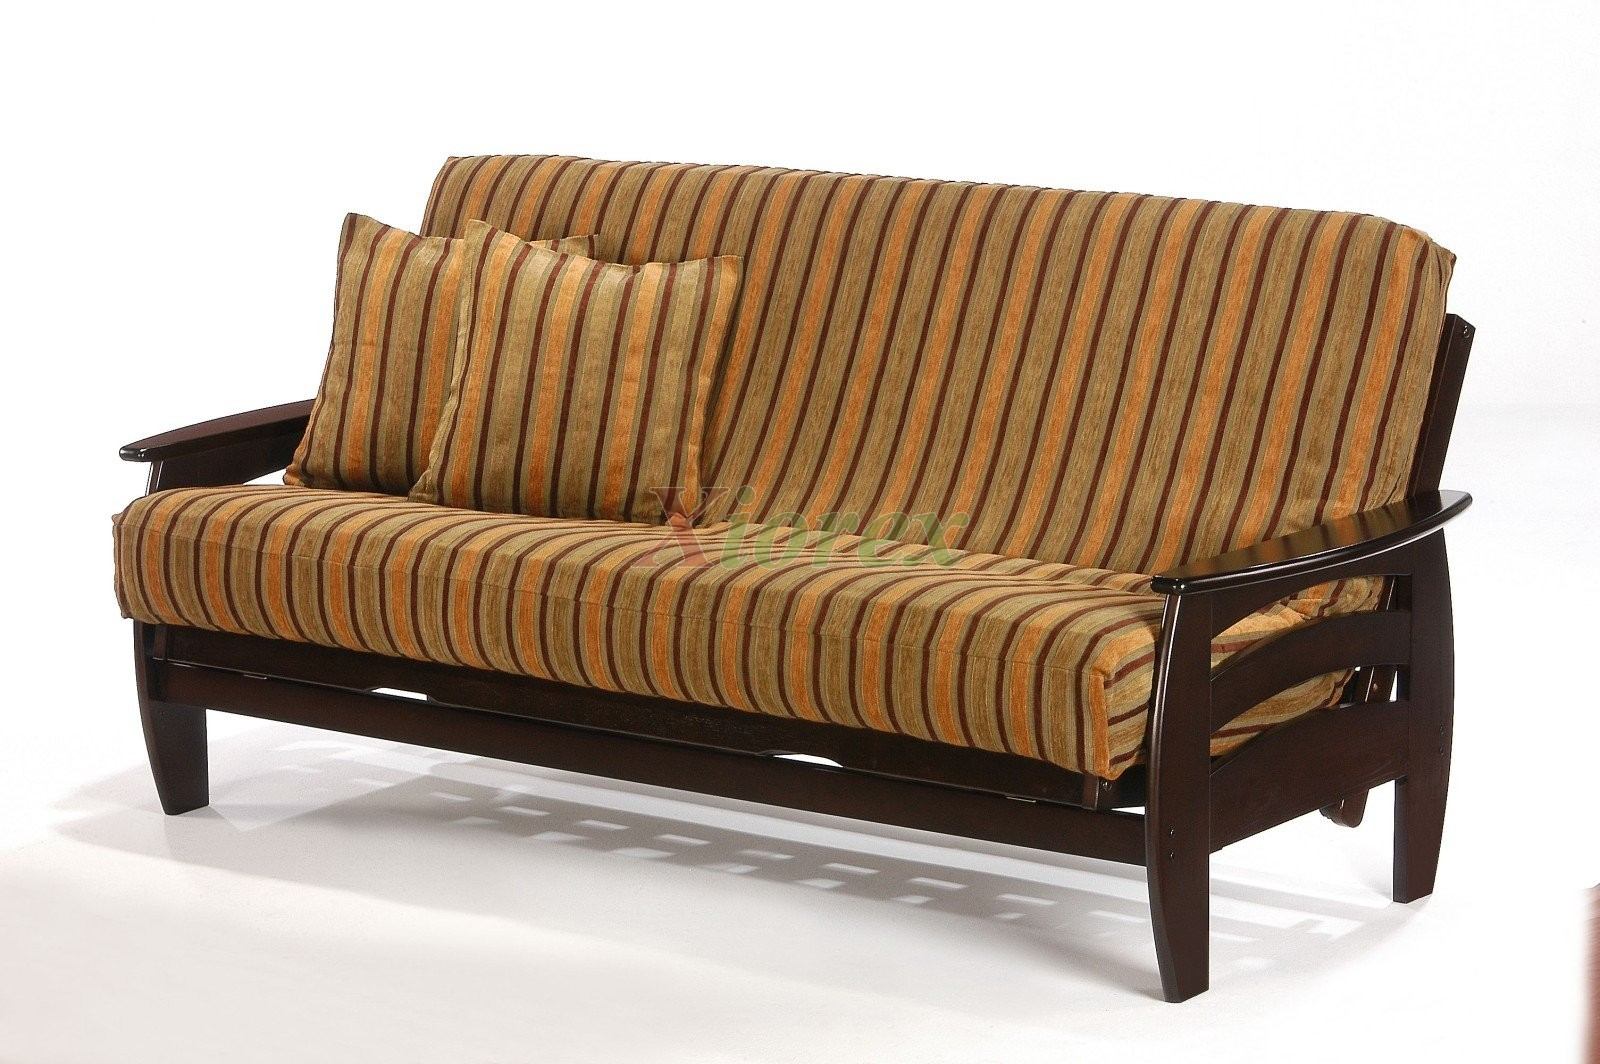 Couch Futon Night and Day Corona Futon Couch Frame